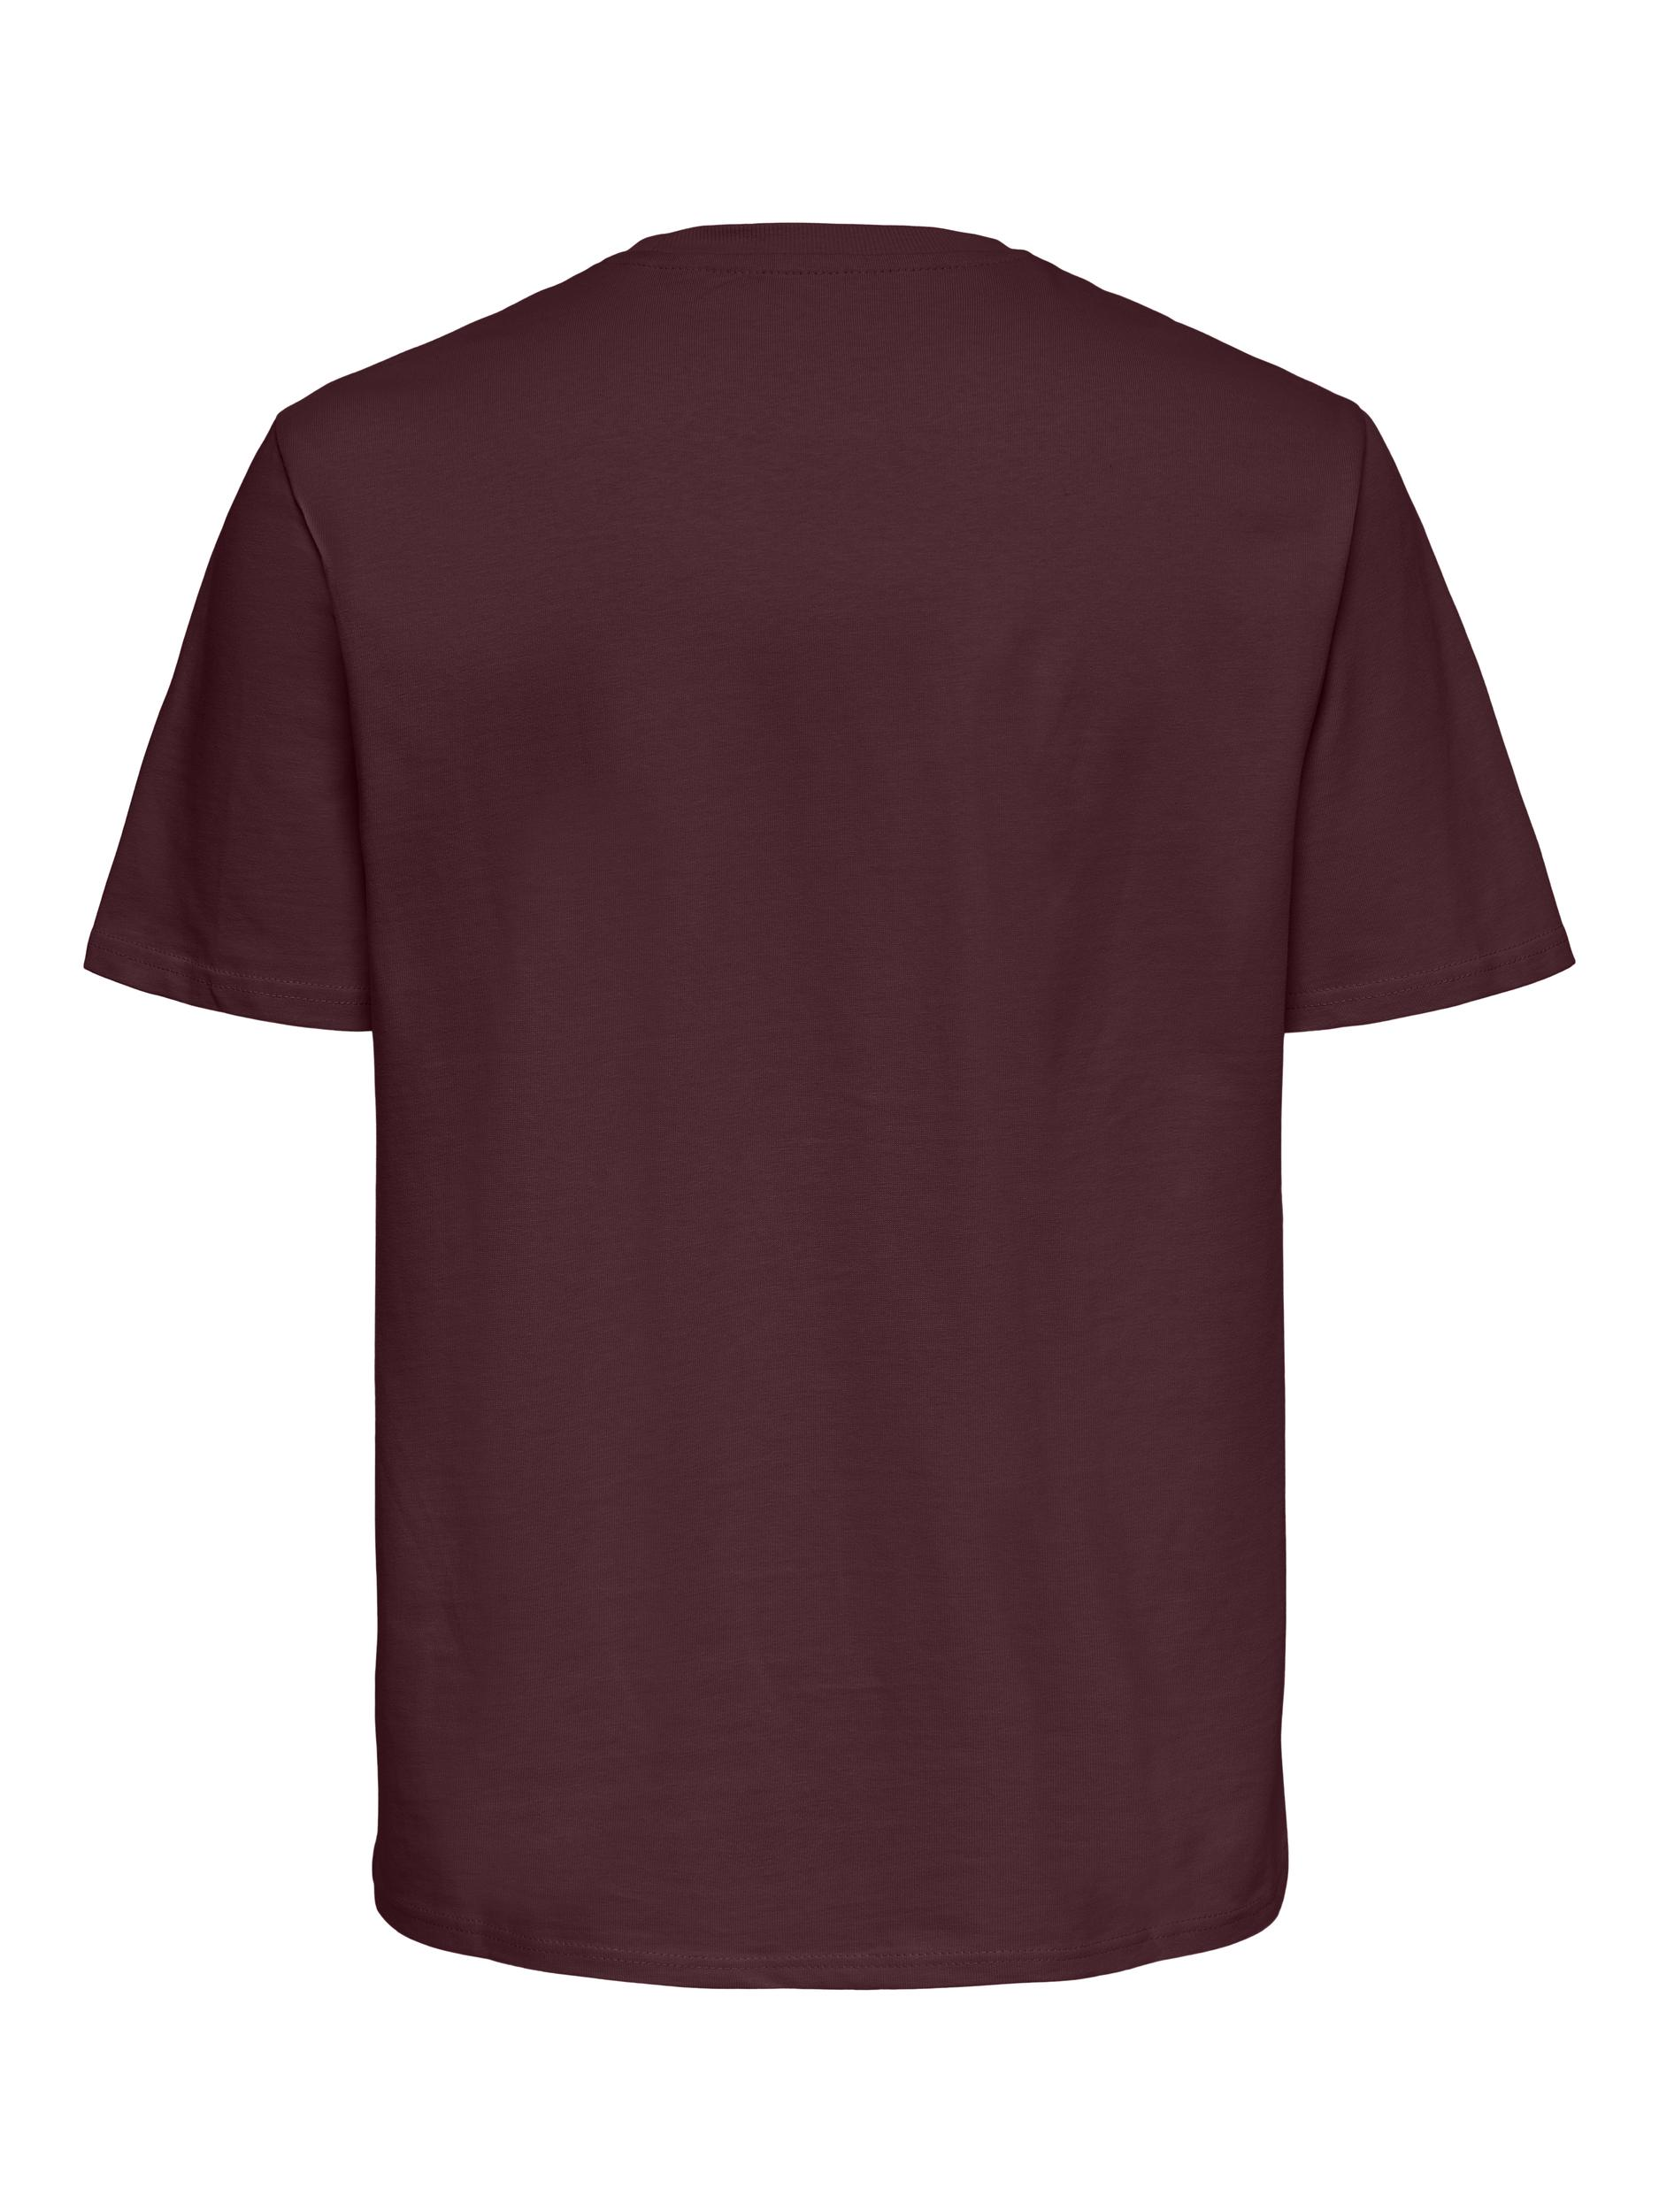 Only & Sons Anel Life SS t-shirt, fudge, xx-large